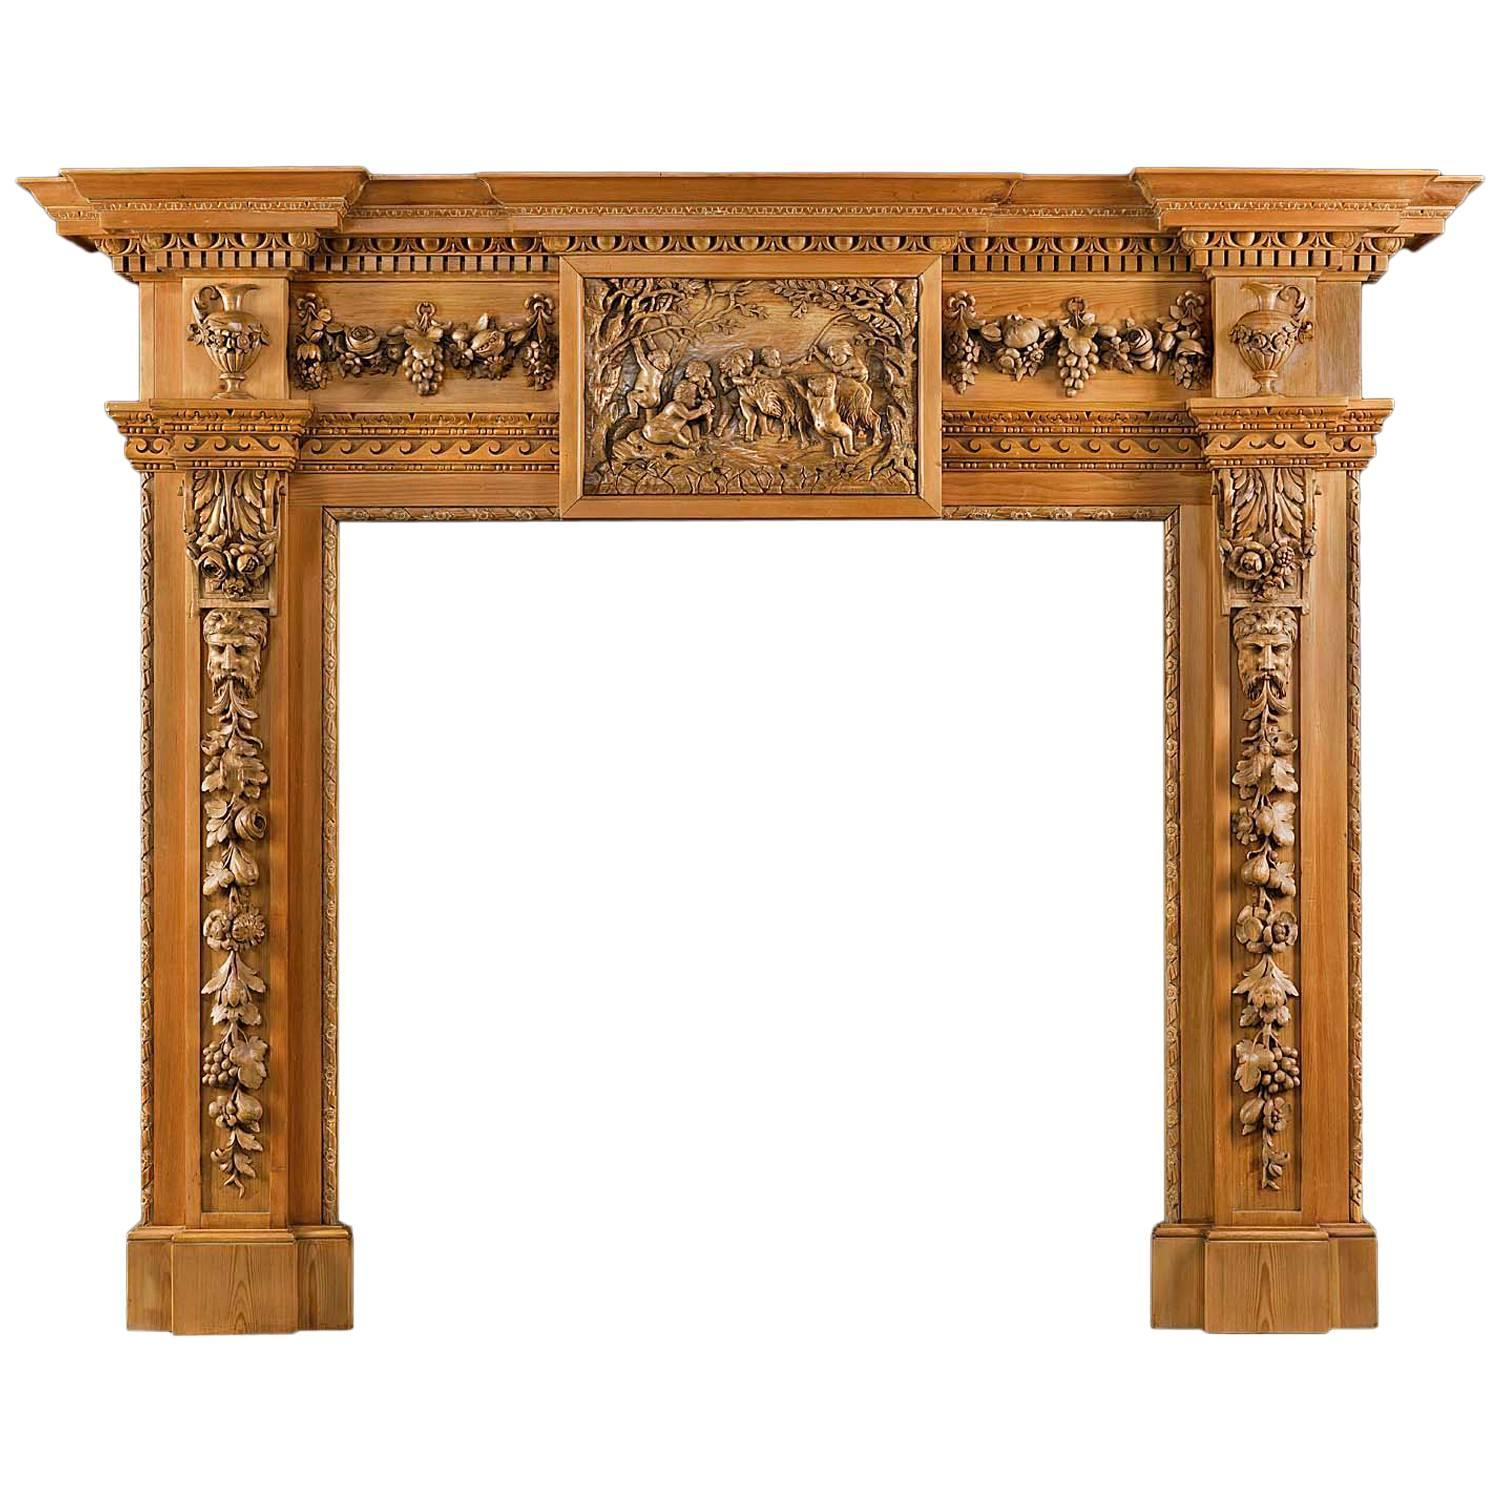 18th century pine and limewood antique fireplace mantel at